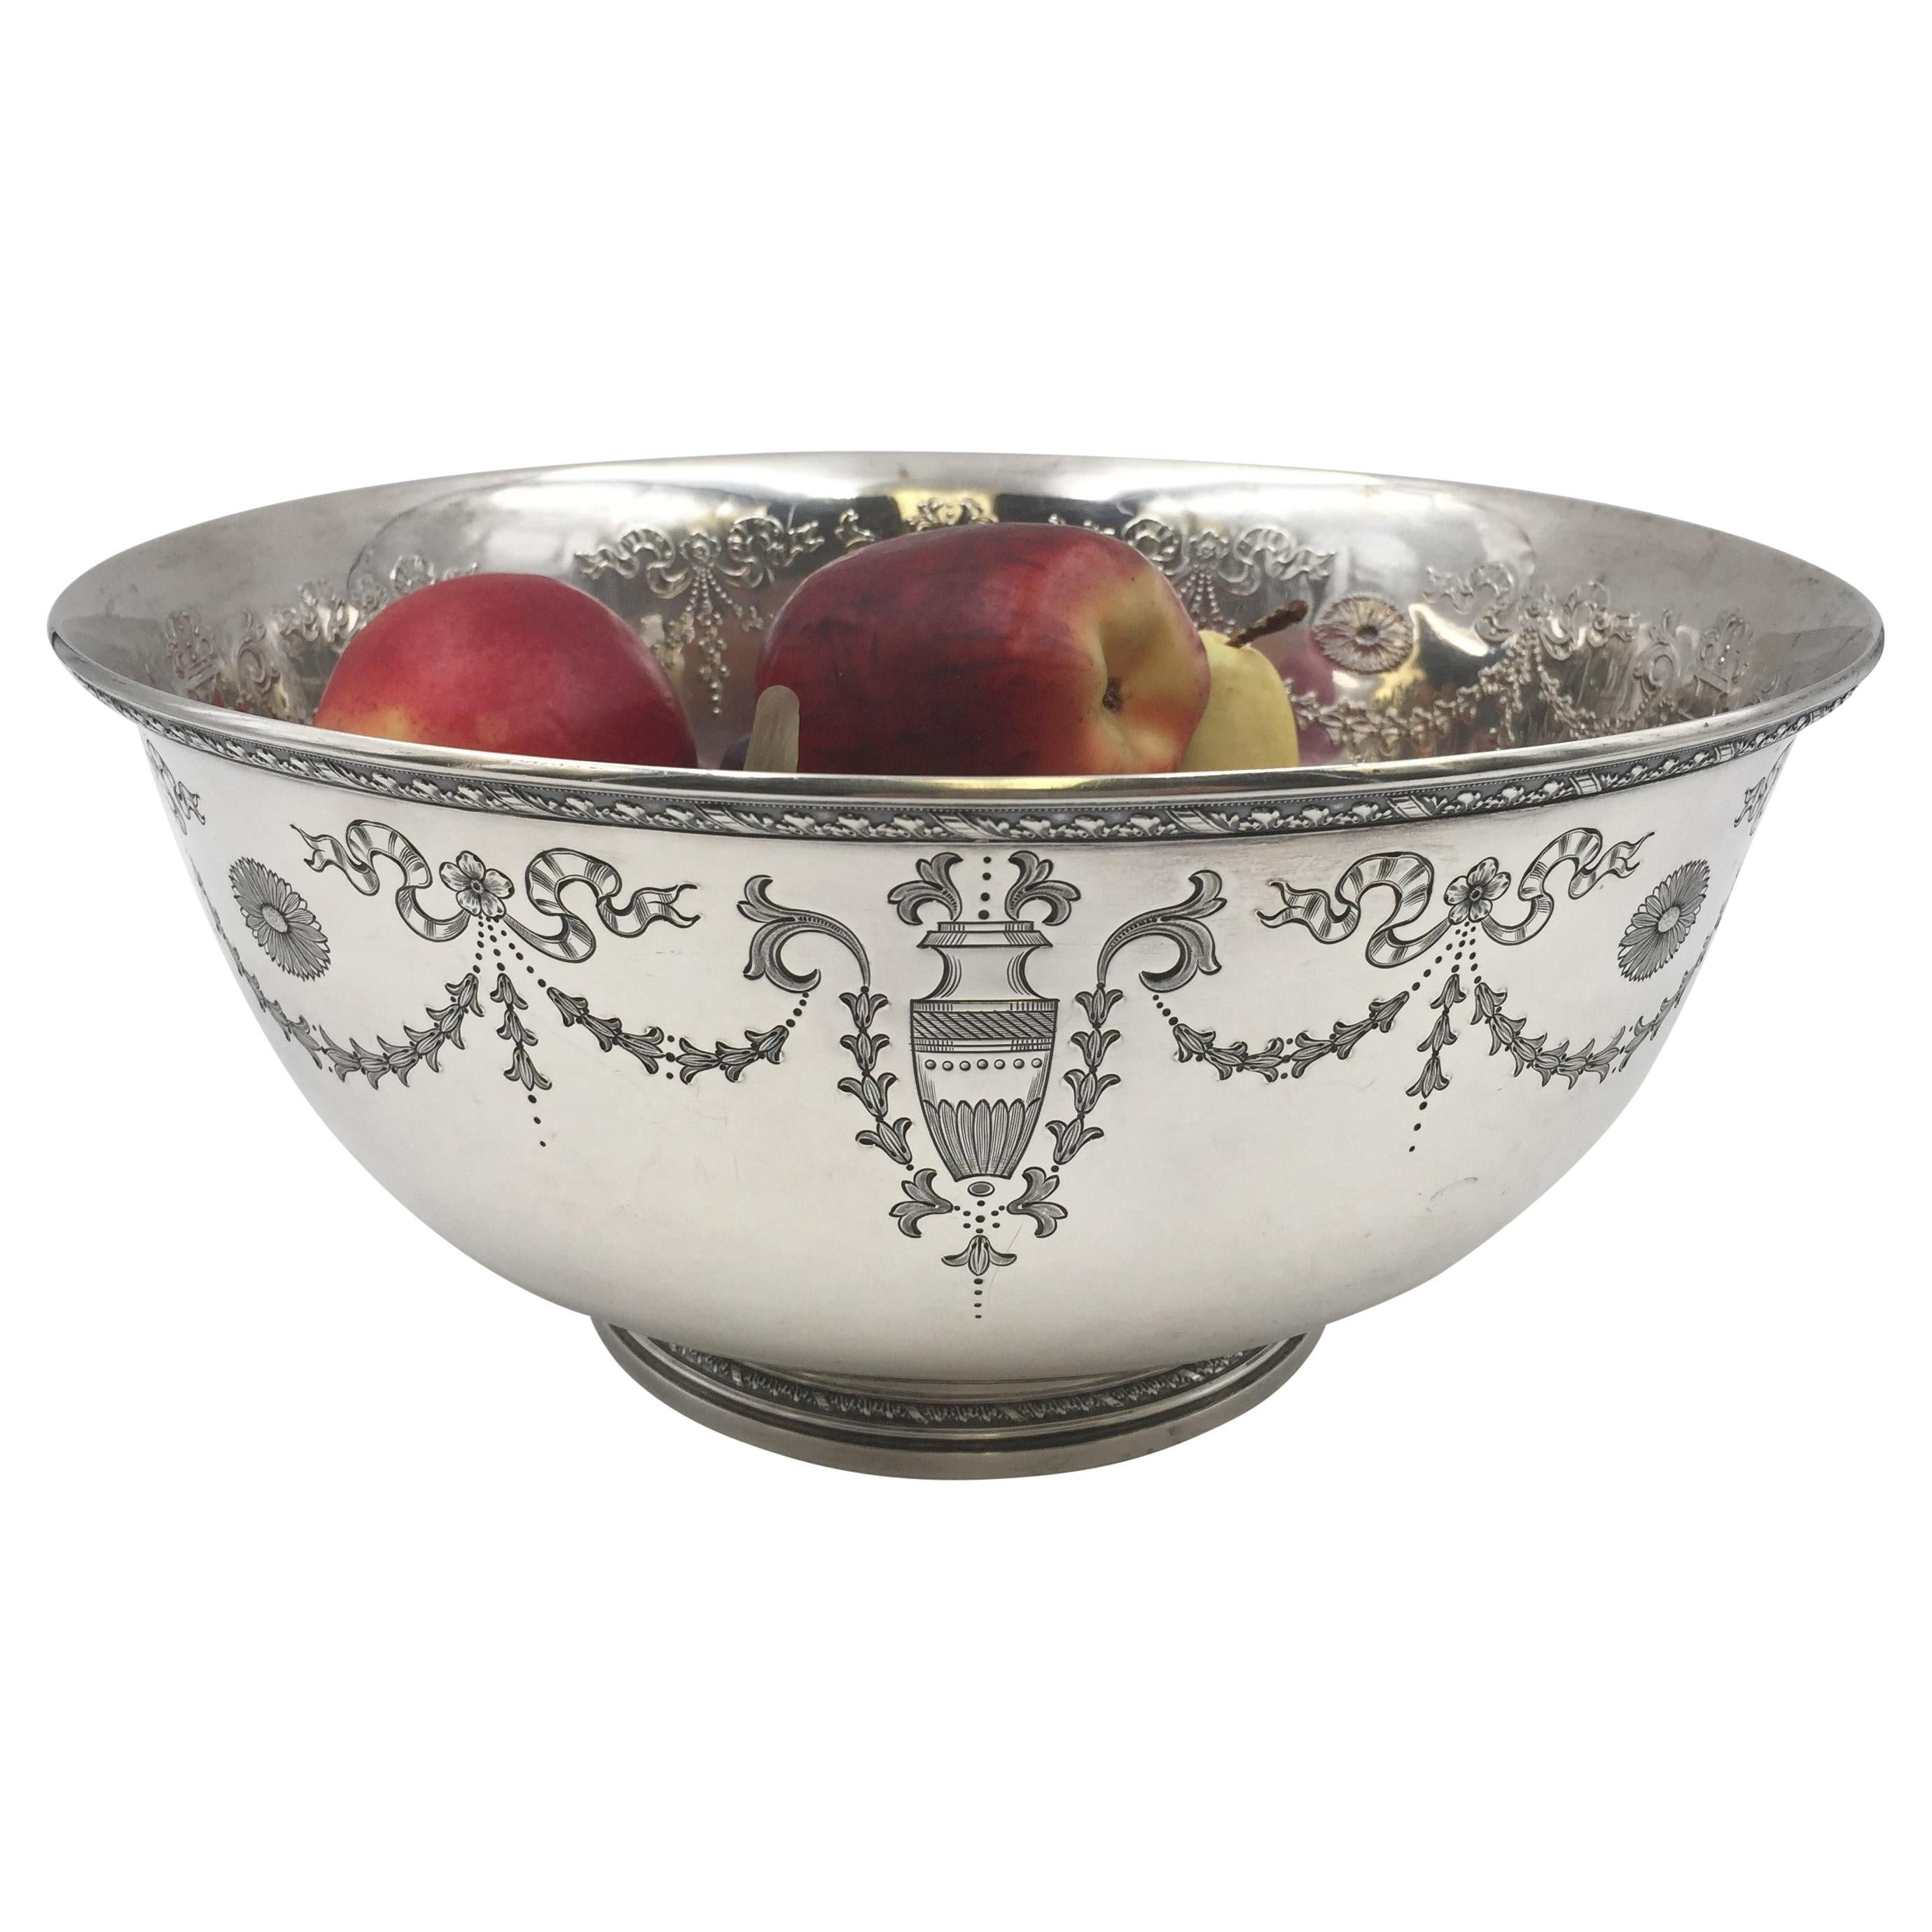 Whiting 1917 Sterling Silver Centerpiece Bowl with Engraved Motifs